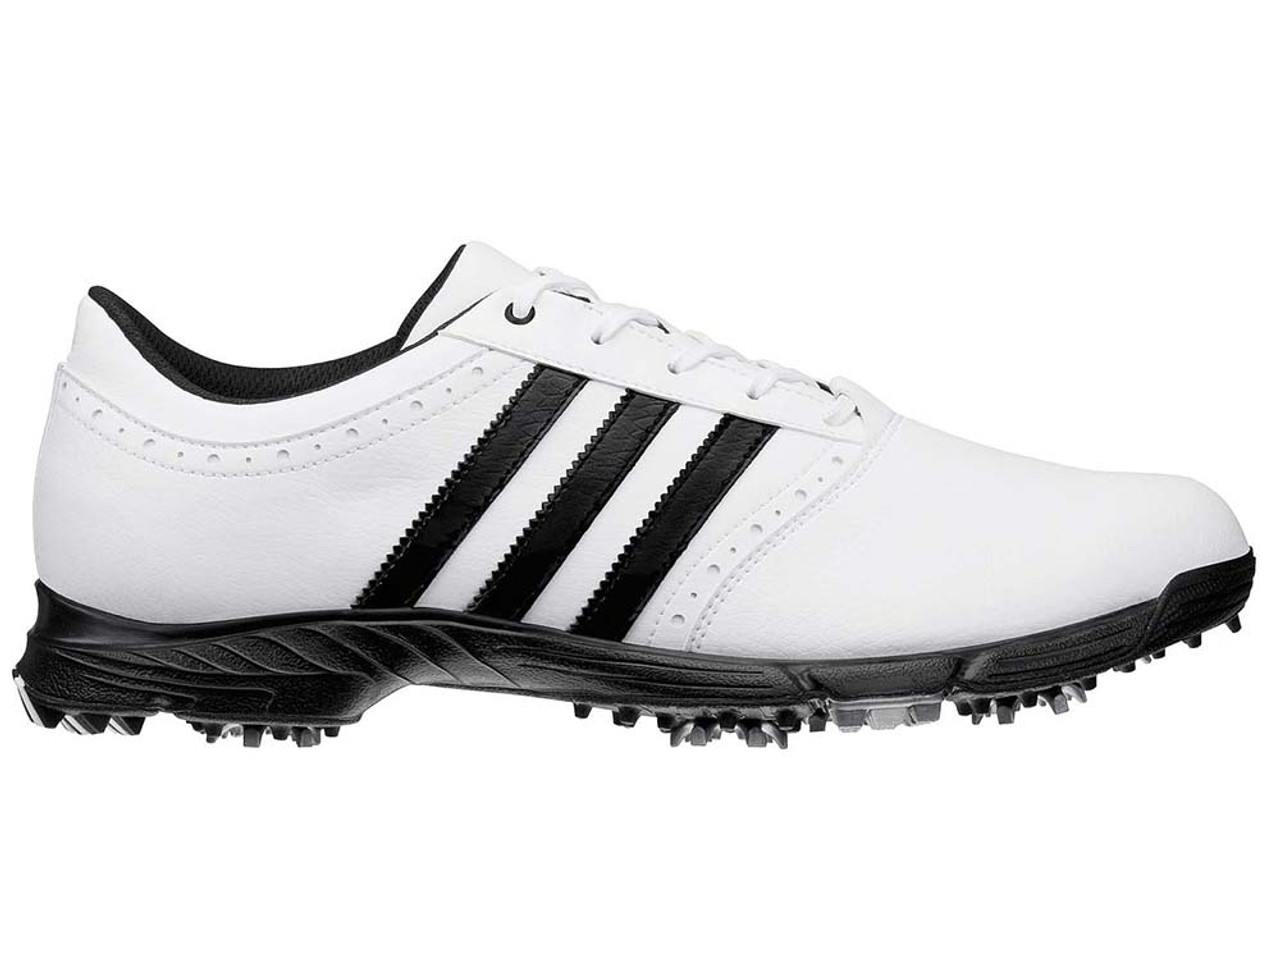 d0a329469b9d Adidas Traxion Classic Golf Shoes - White Black - Mens For Sale ...